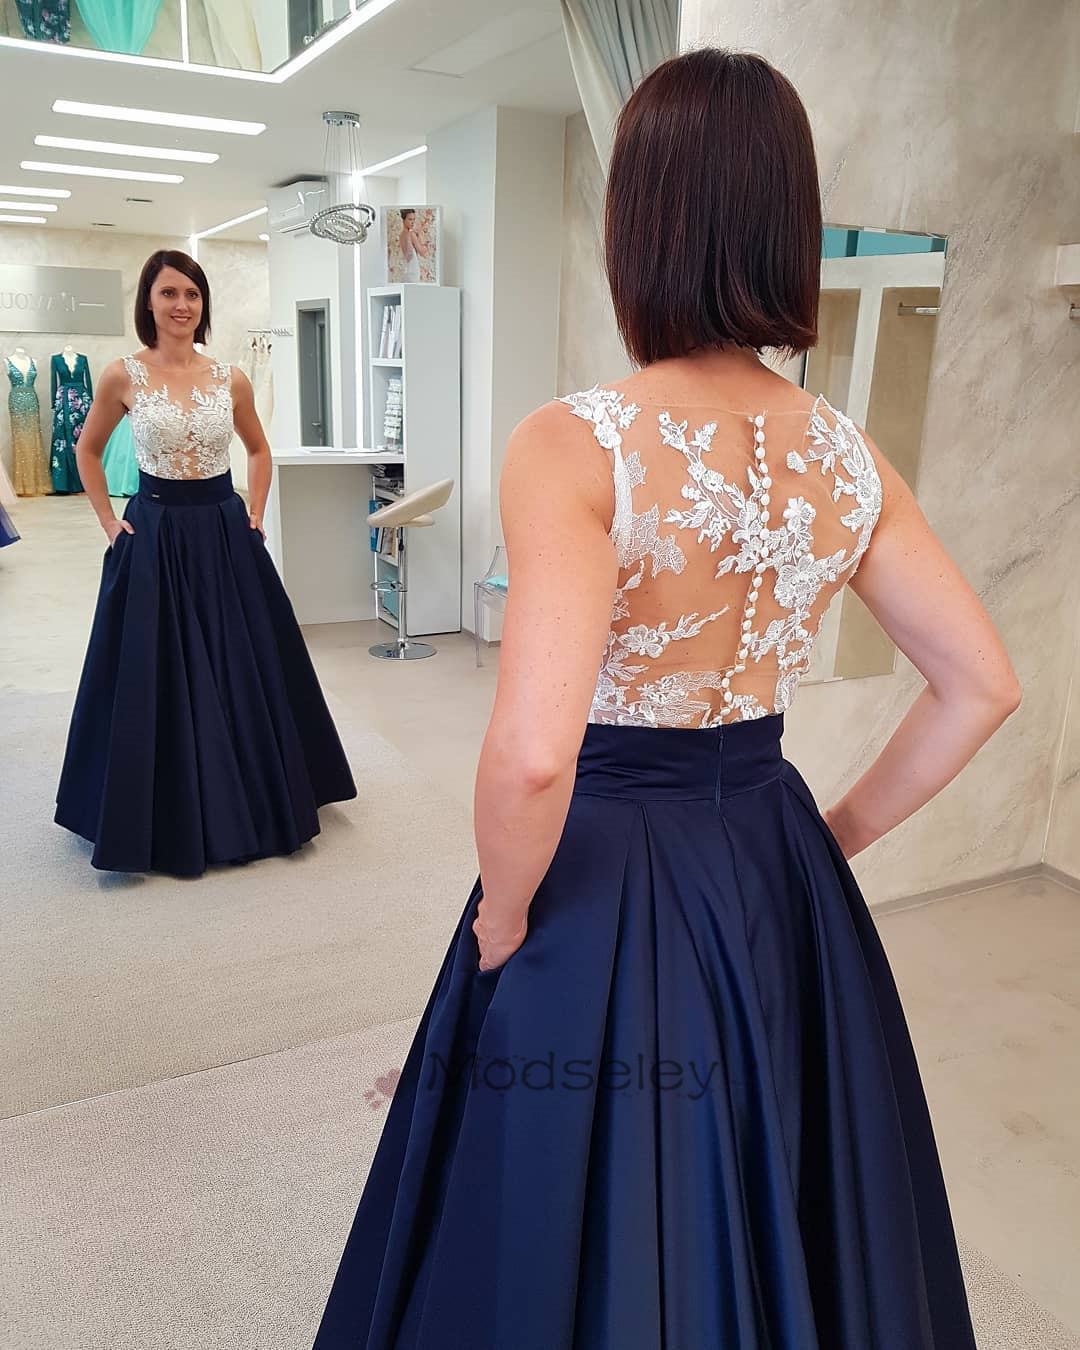 b7ac746296b8 Navy Blue Long Prom Dress with White Lace Top · modseleystore ...